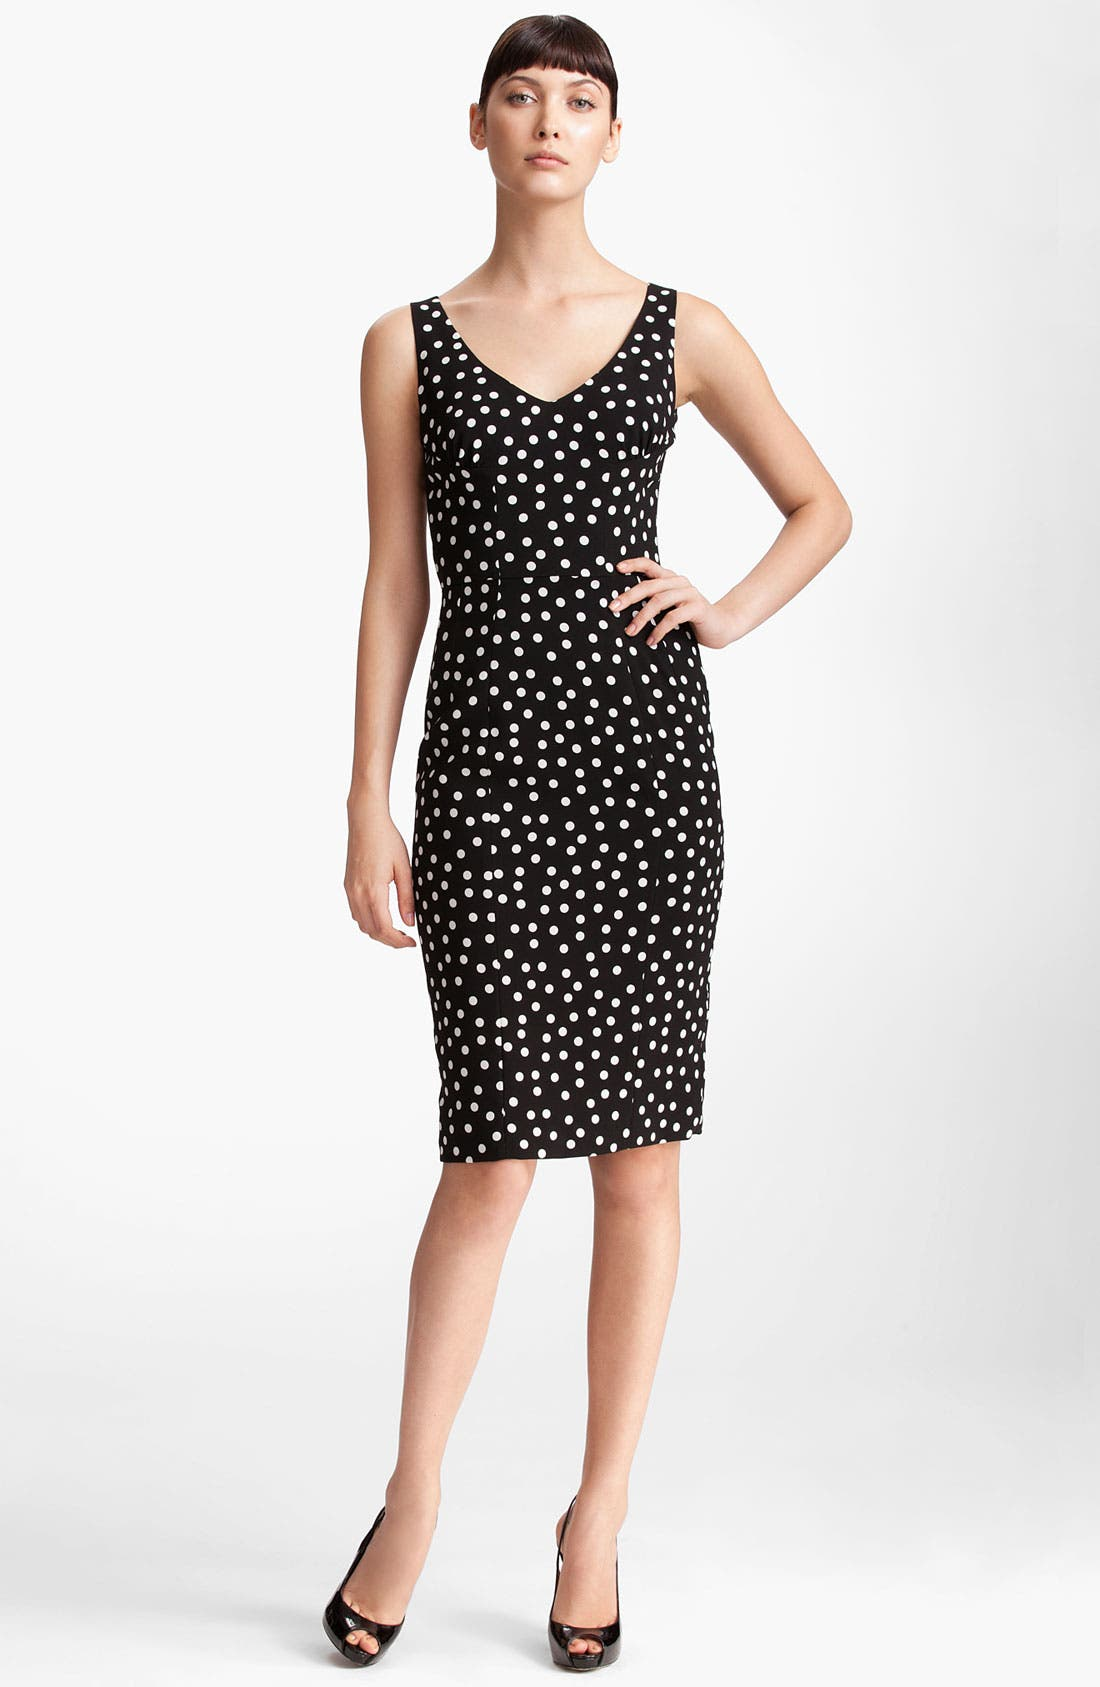 Main Image - Dolce&Gabbana Polka Dot Stretch Cady Dress